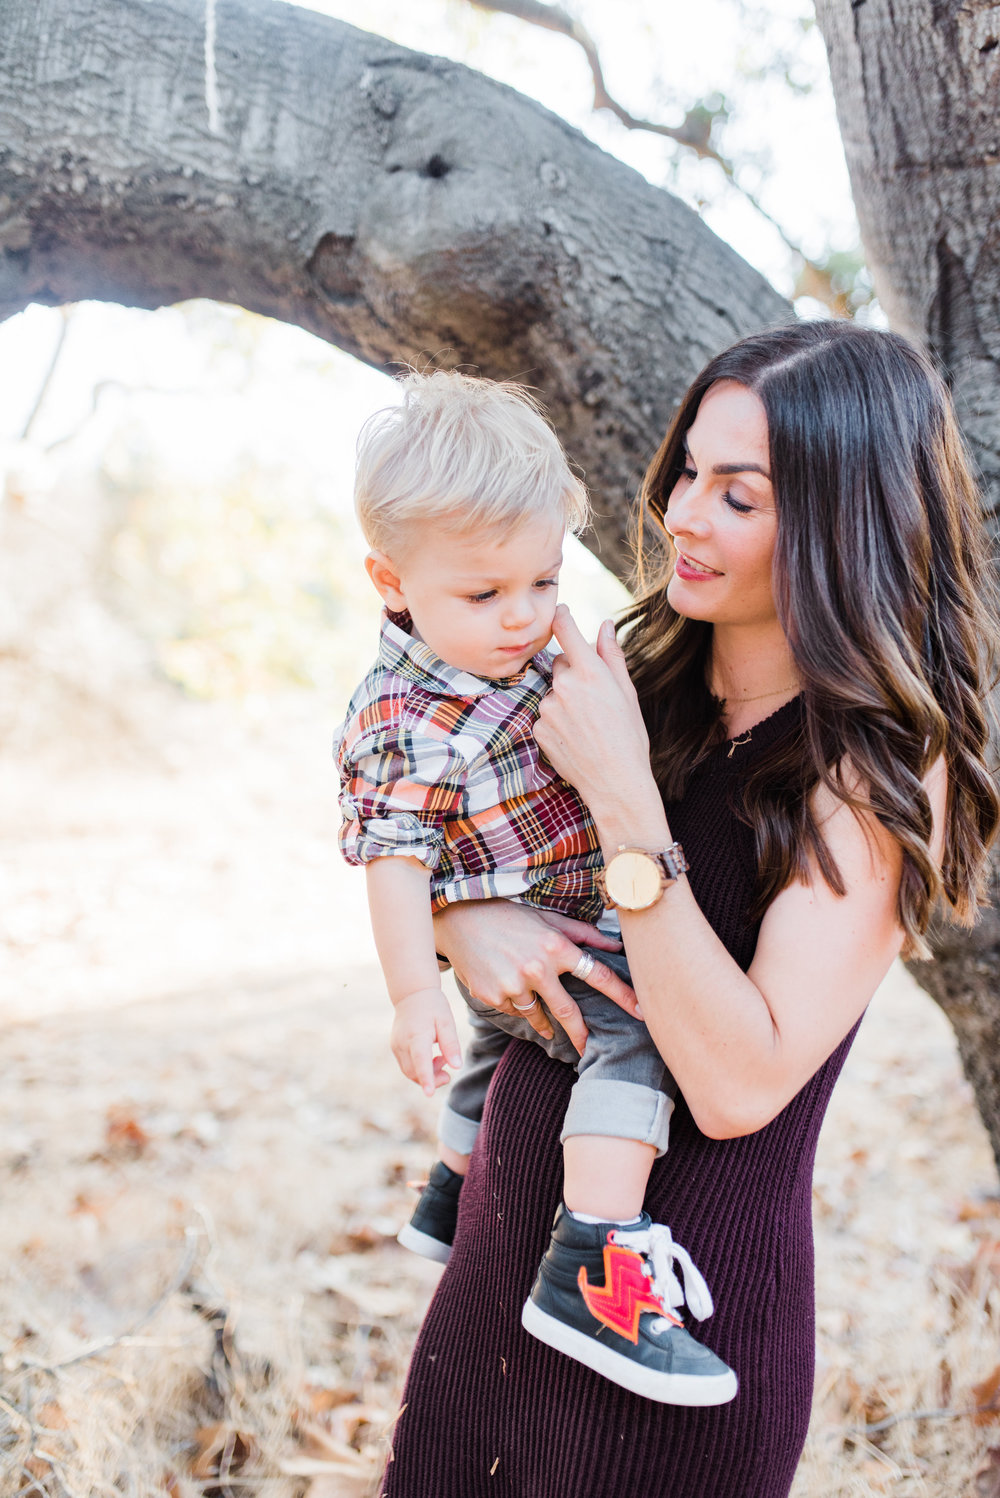 Aiden loves when I touch his cheek - it helps put him in a calm state. Good touch can be so important for bonding moments!  Photo credit  Chelsea Frandsen Photography